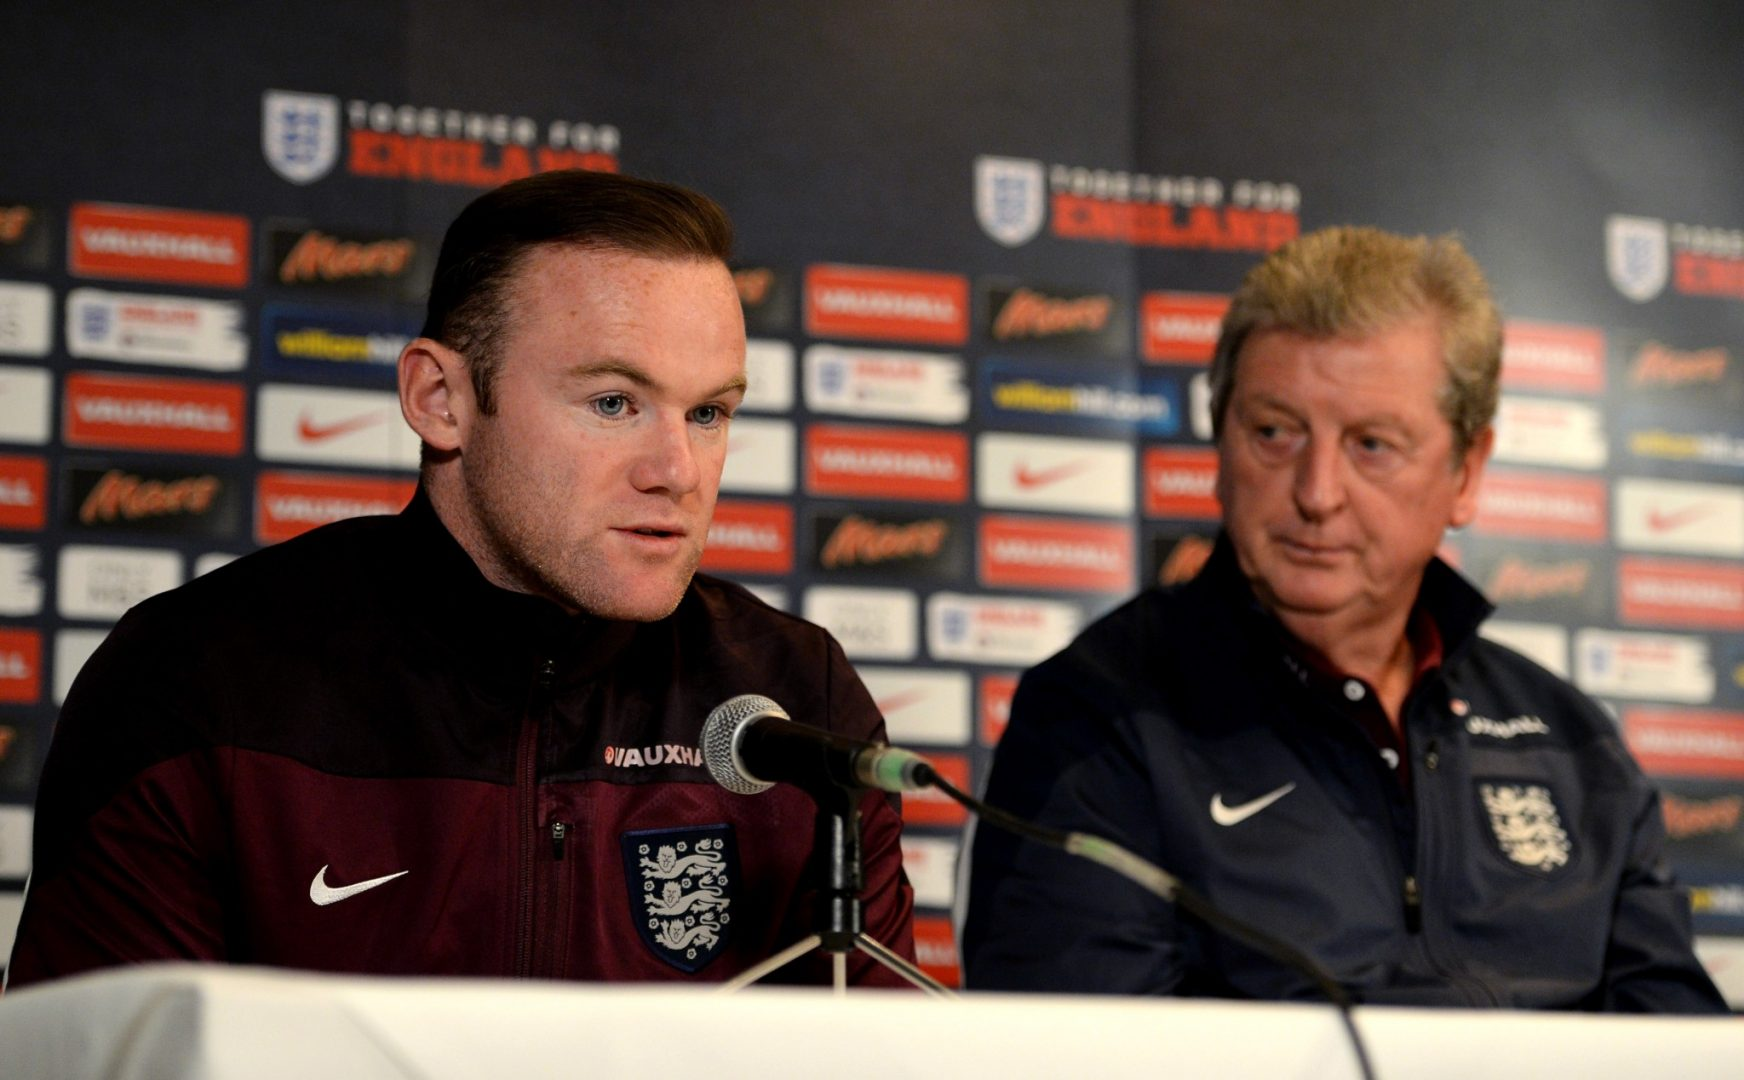 Wayne Rooney and Roy Hodgson at an England press conference.